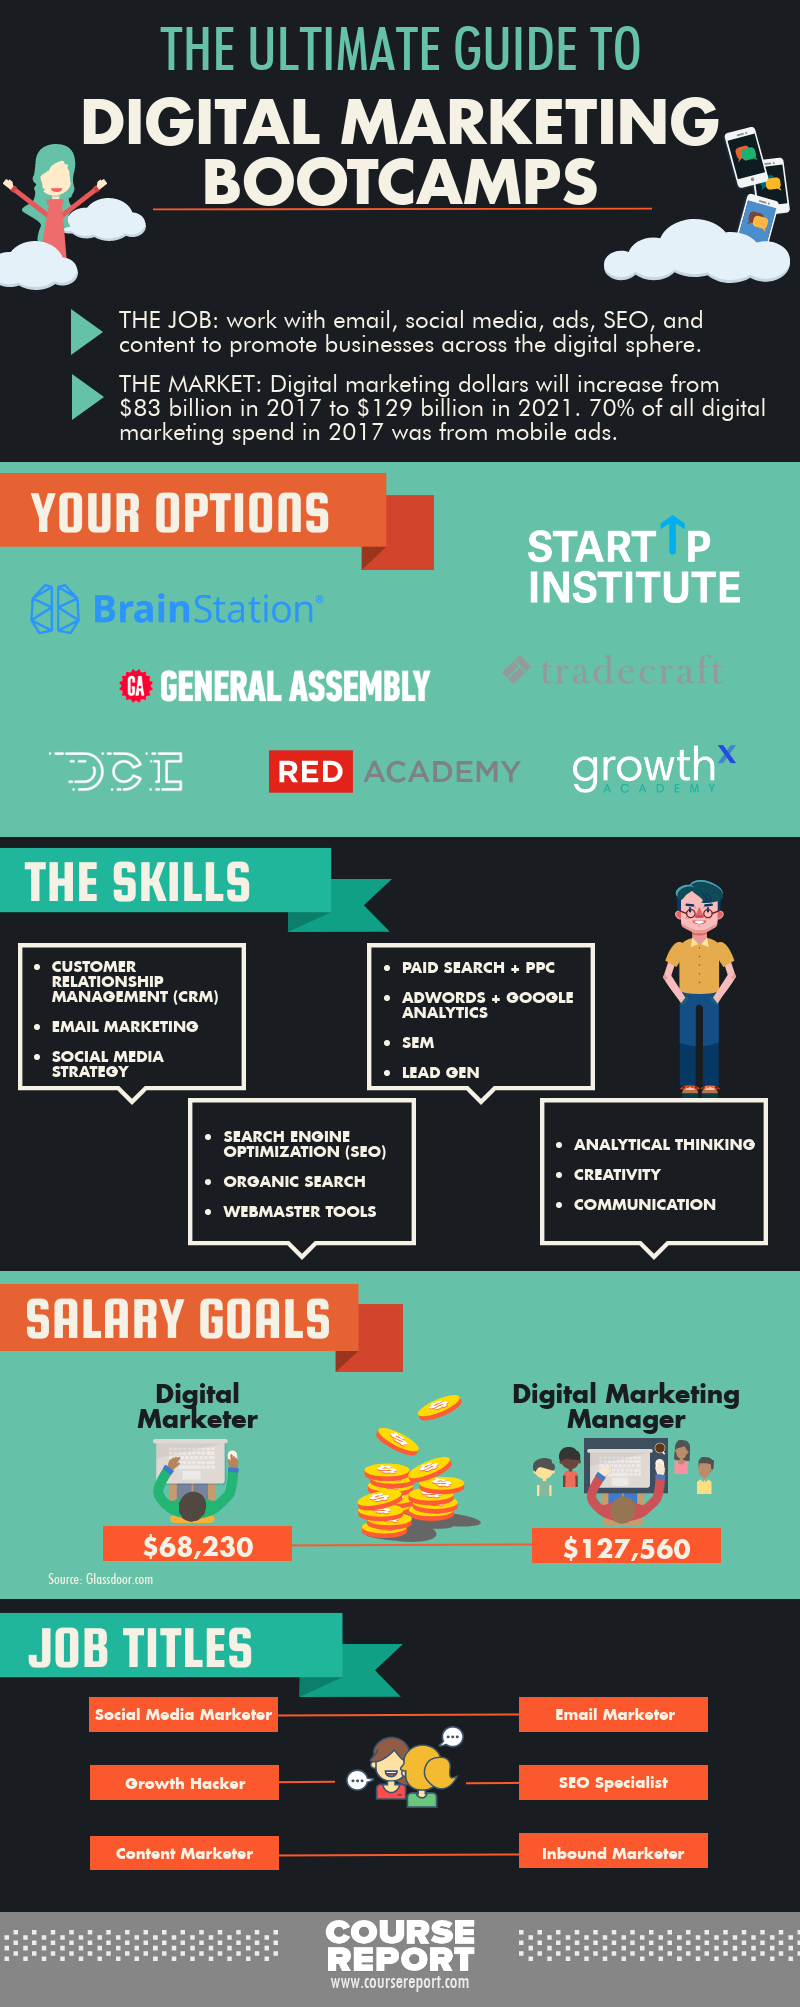 ultimate guide to digital marketing bootcamps infographic, digital marketing salary, best digital marketing courses